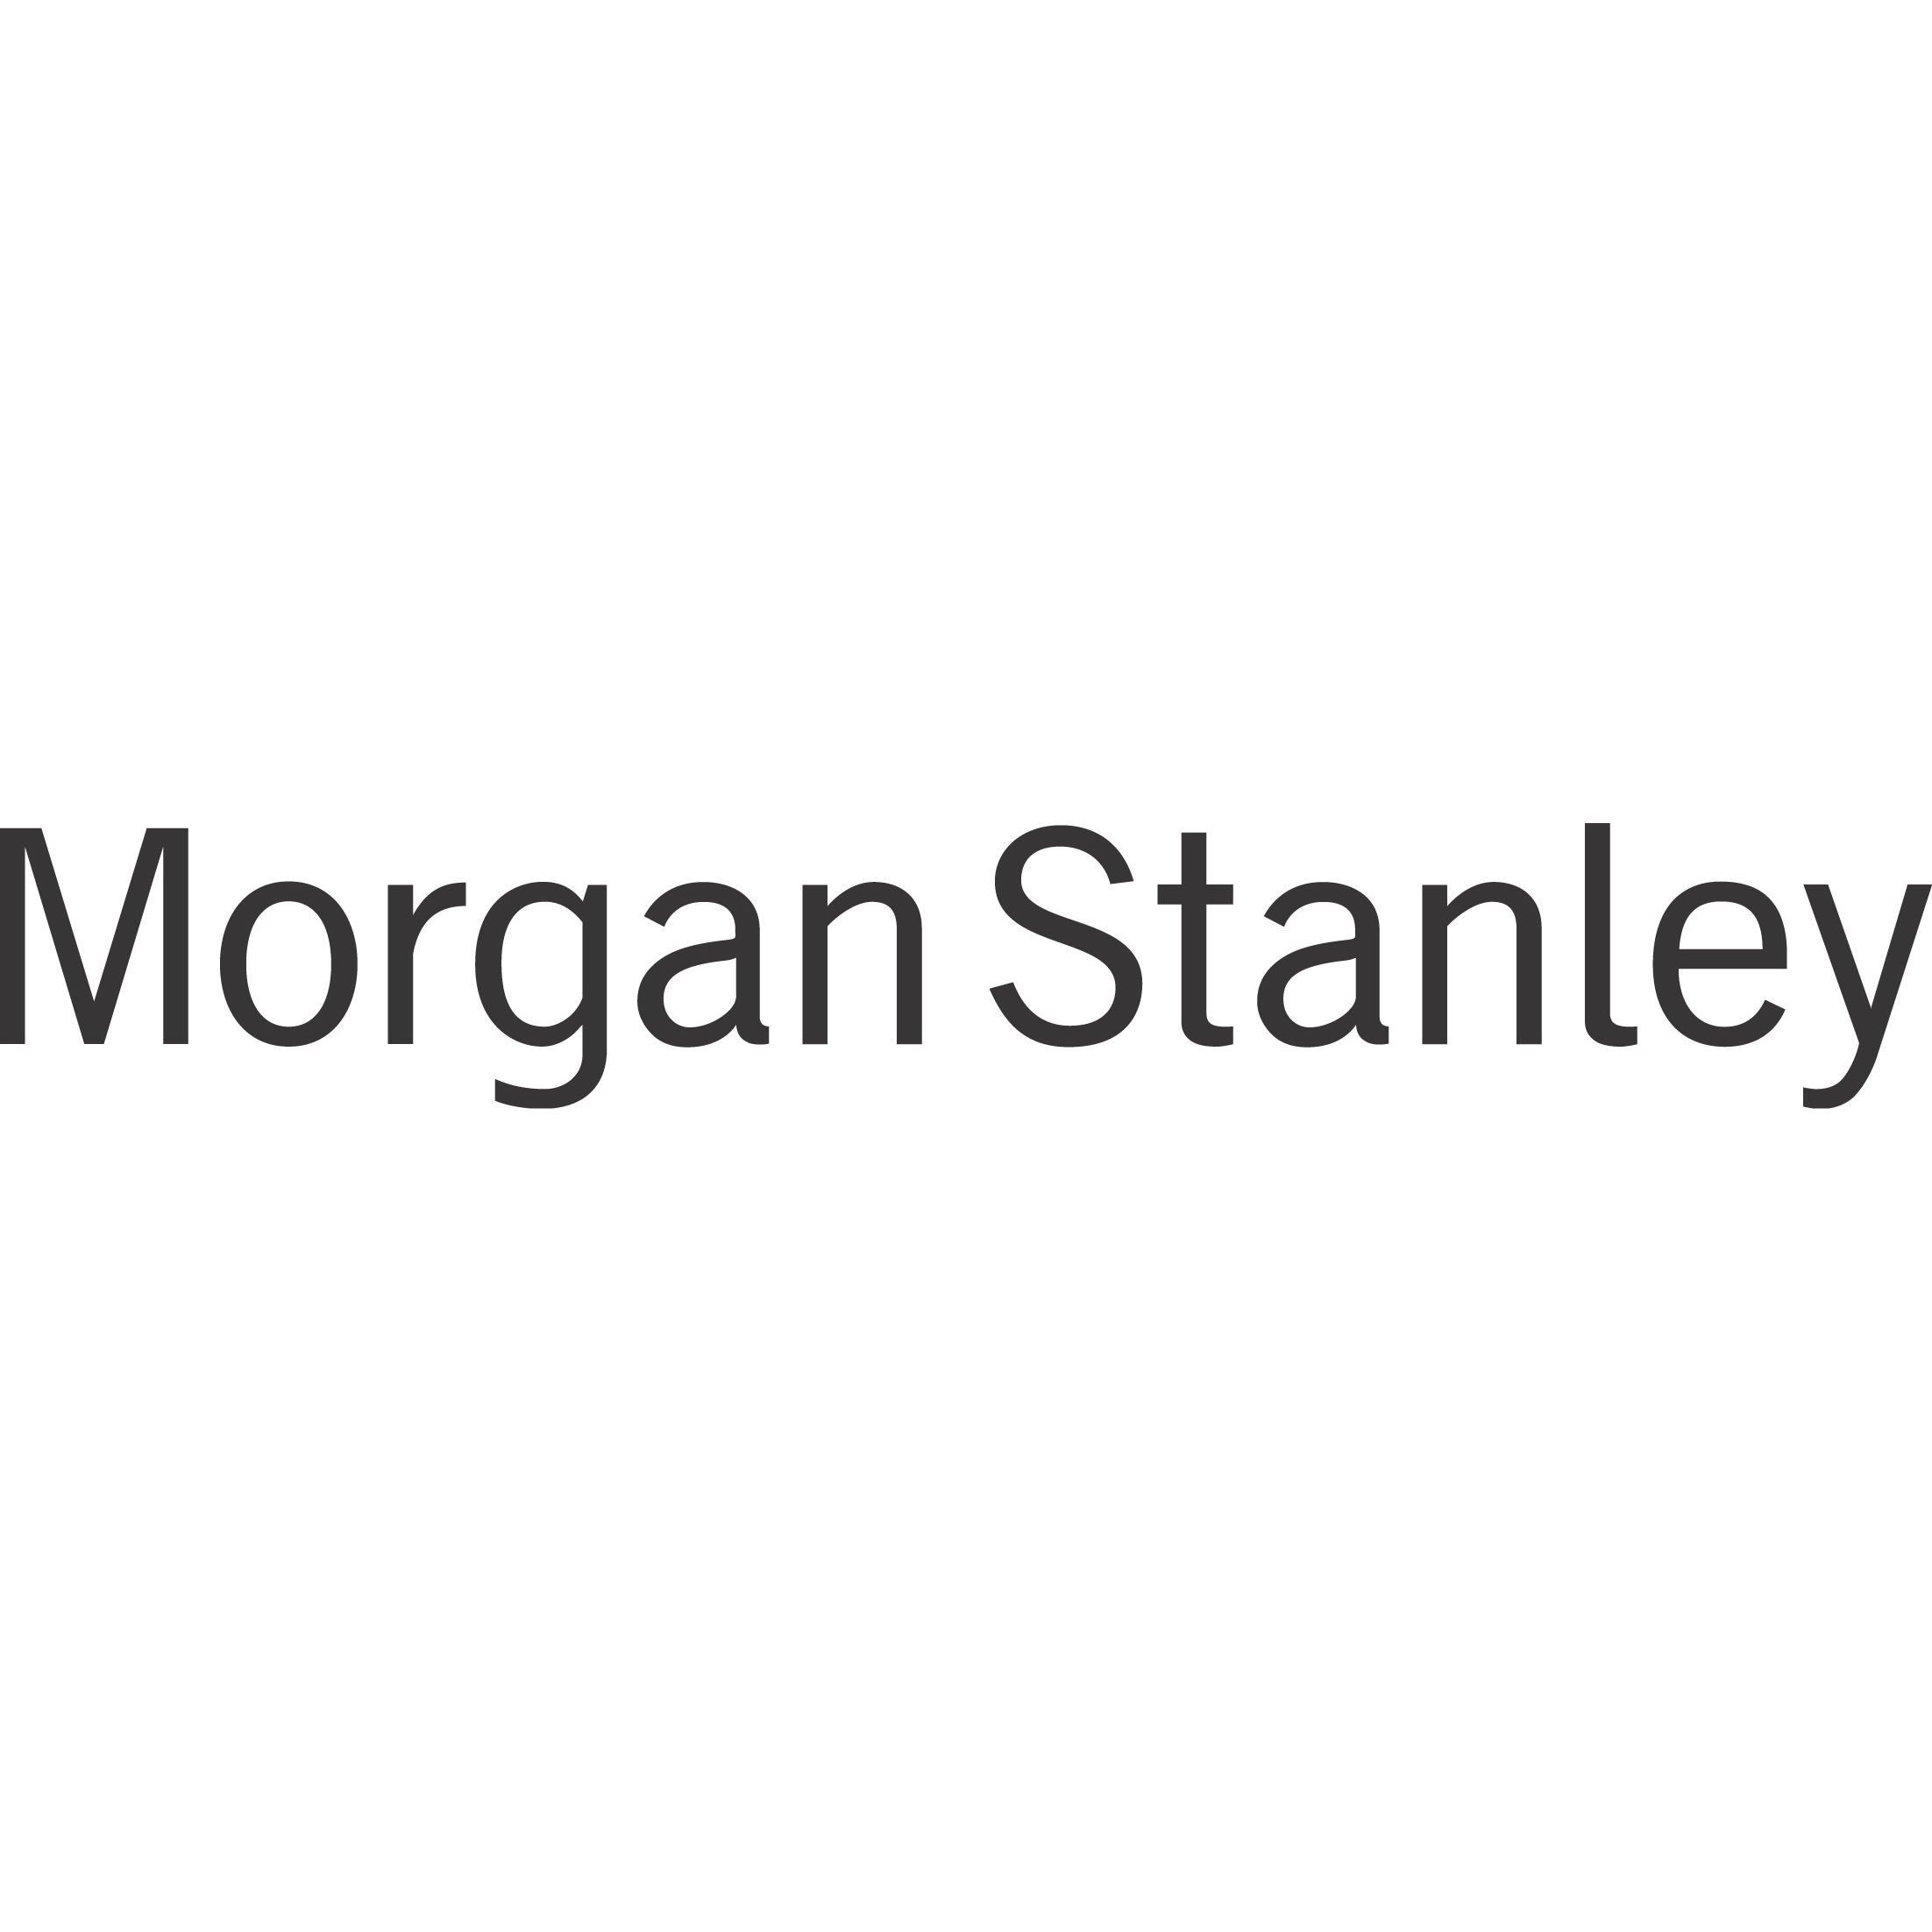 The Miller Conturso Group - Morgan Stanley